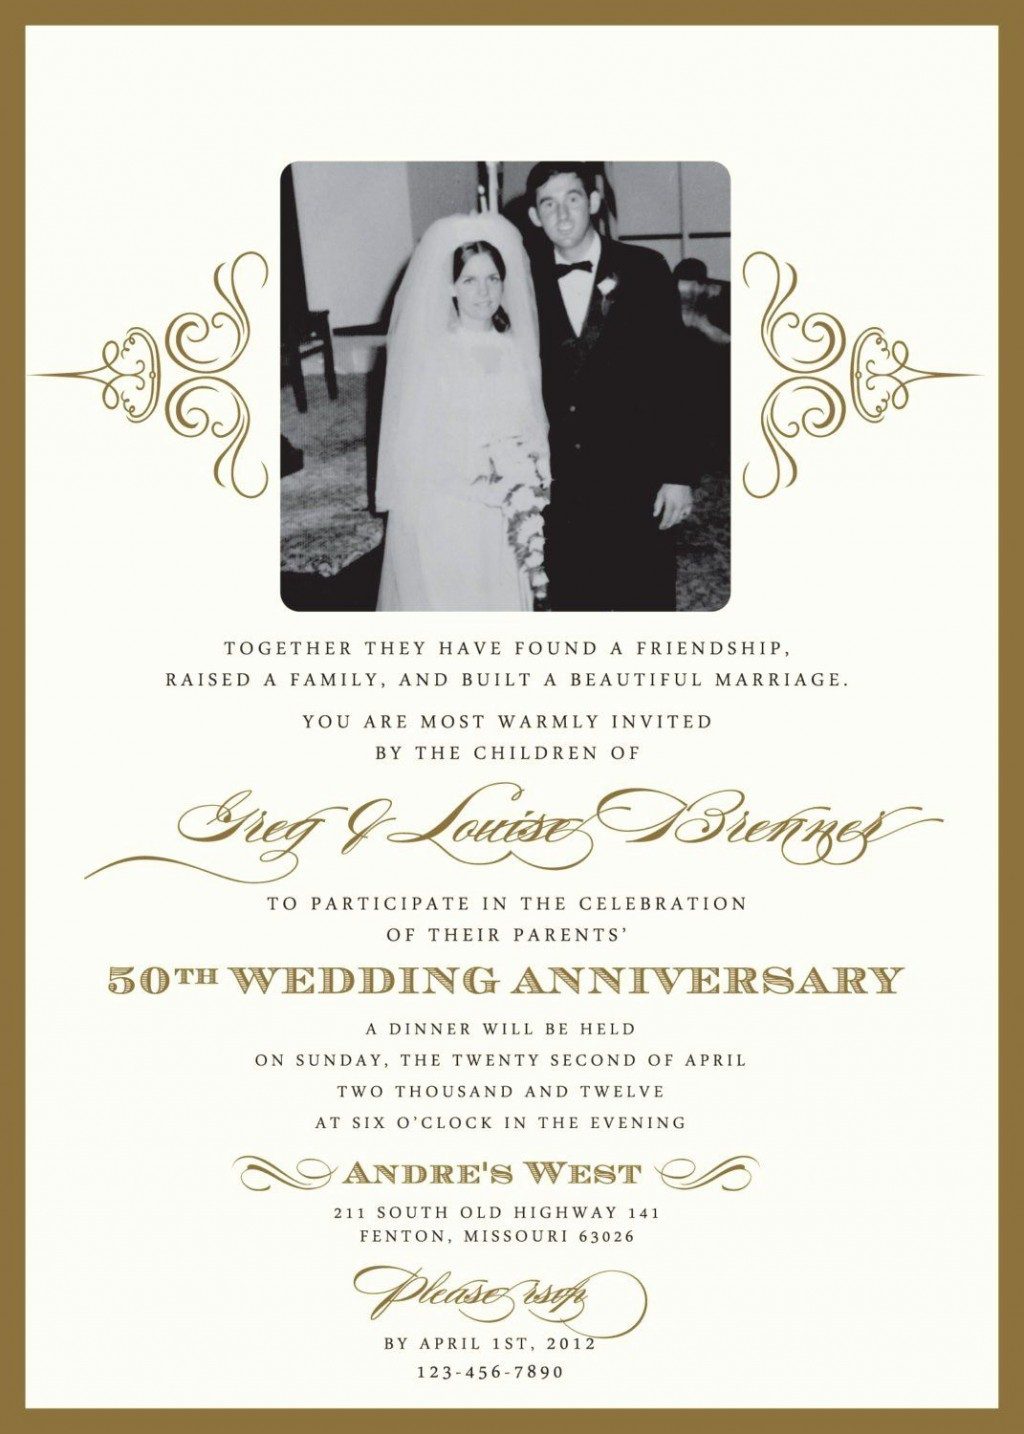 004 Excellent Free 50th Wedding Anniversary Party Invitation Template Image  TemplatesLarge